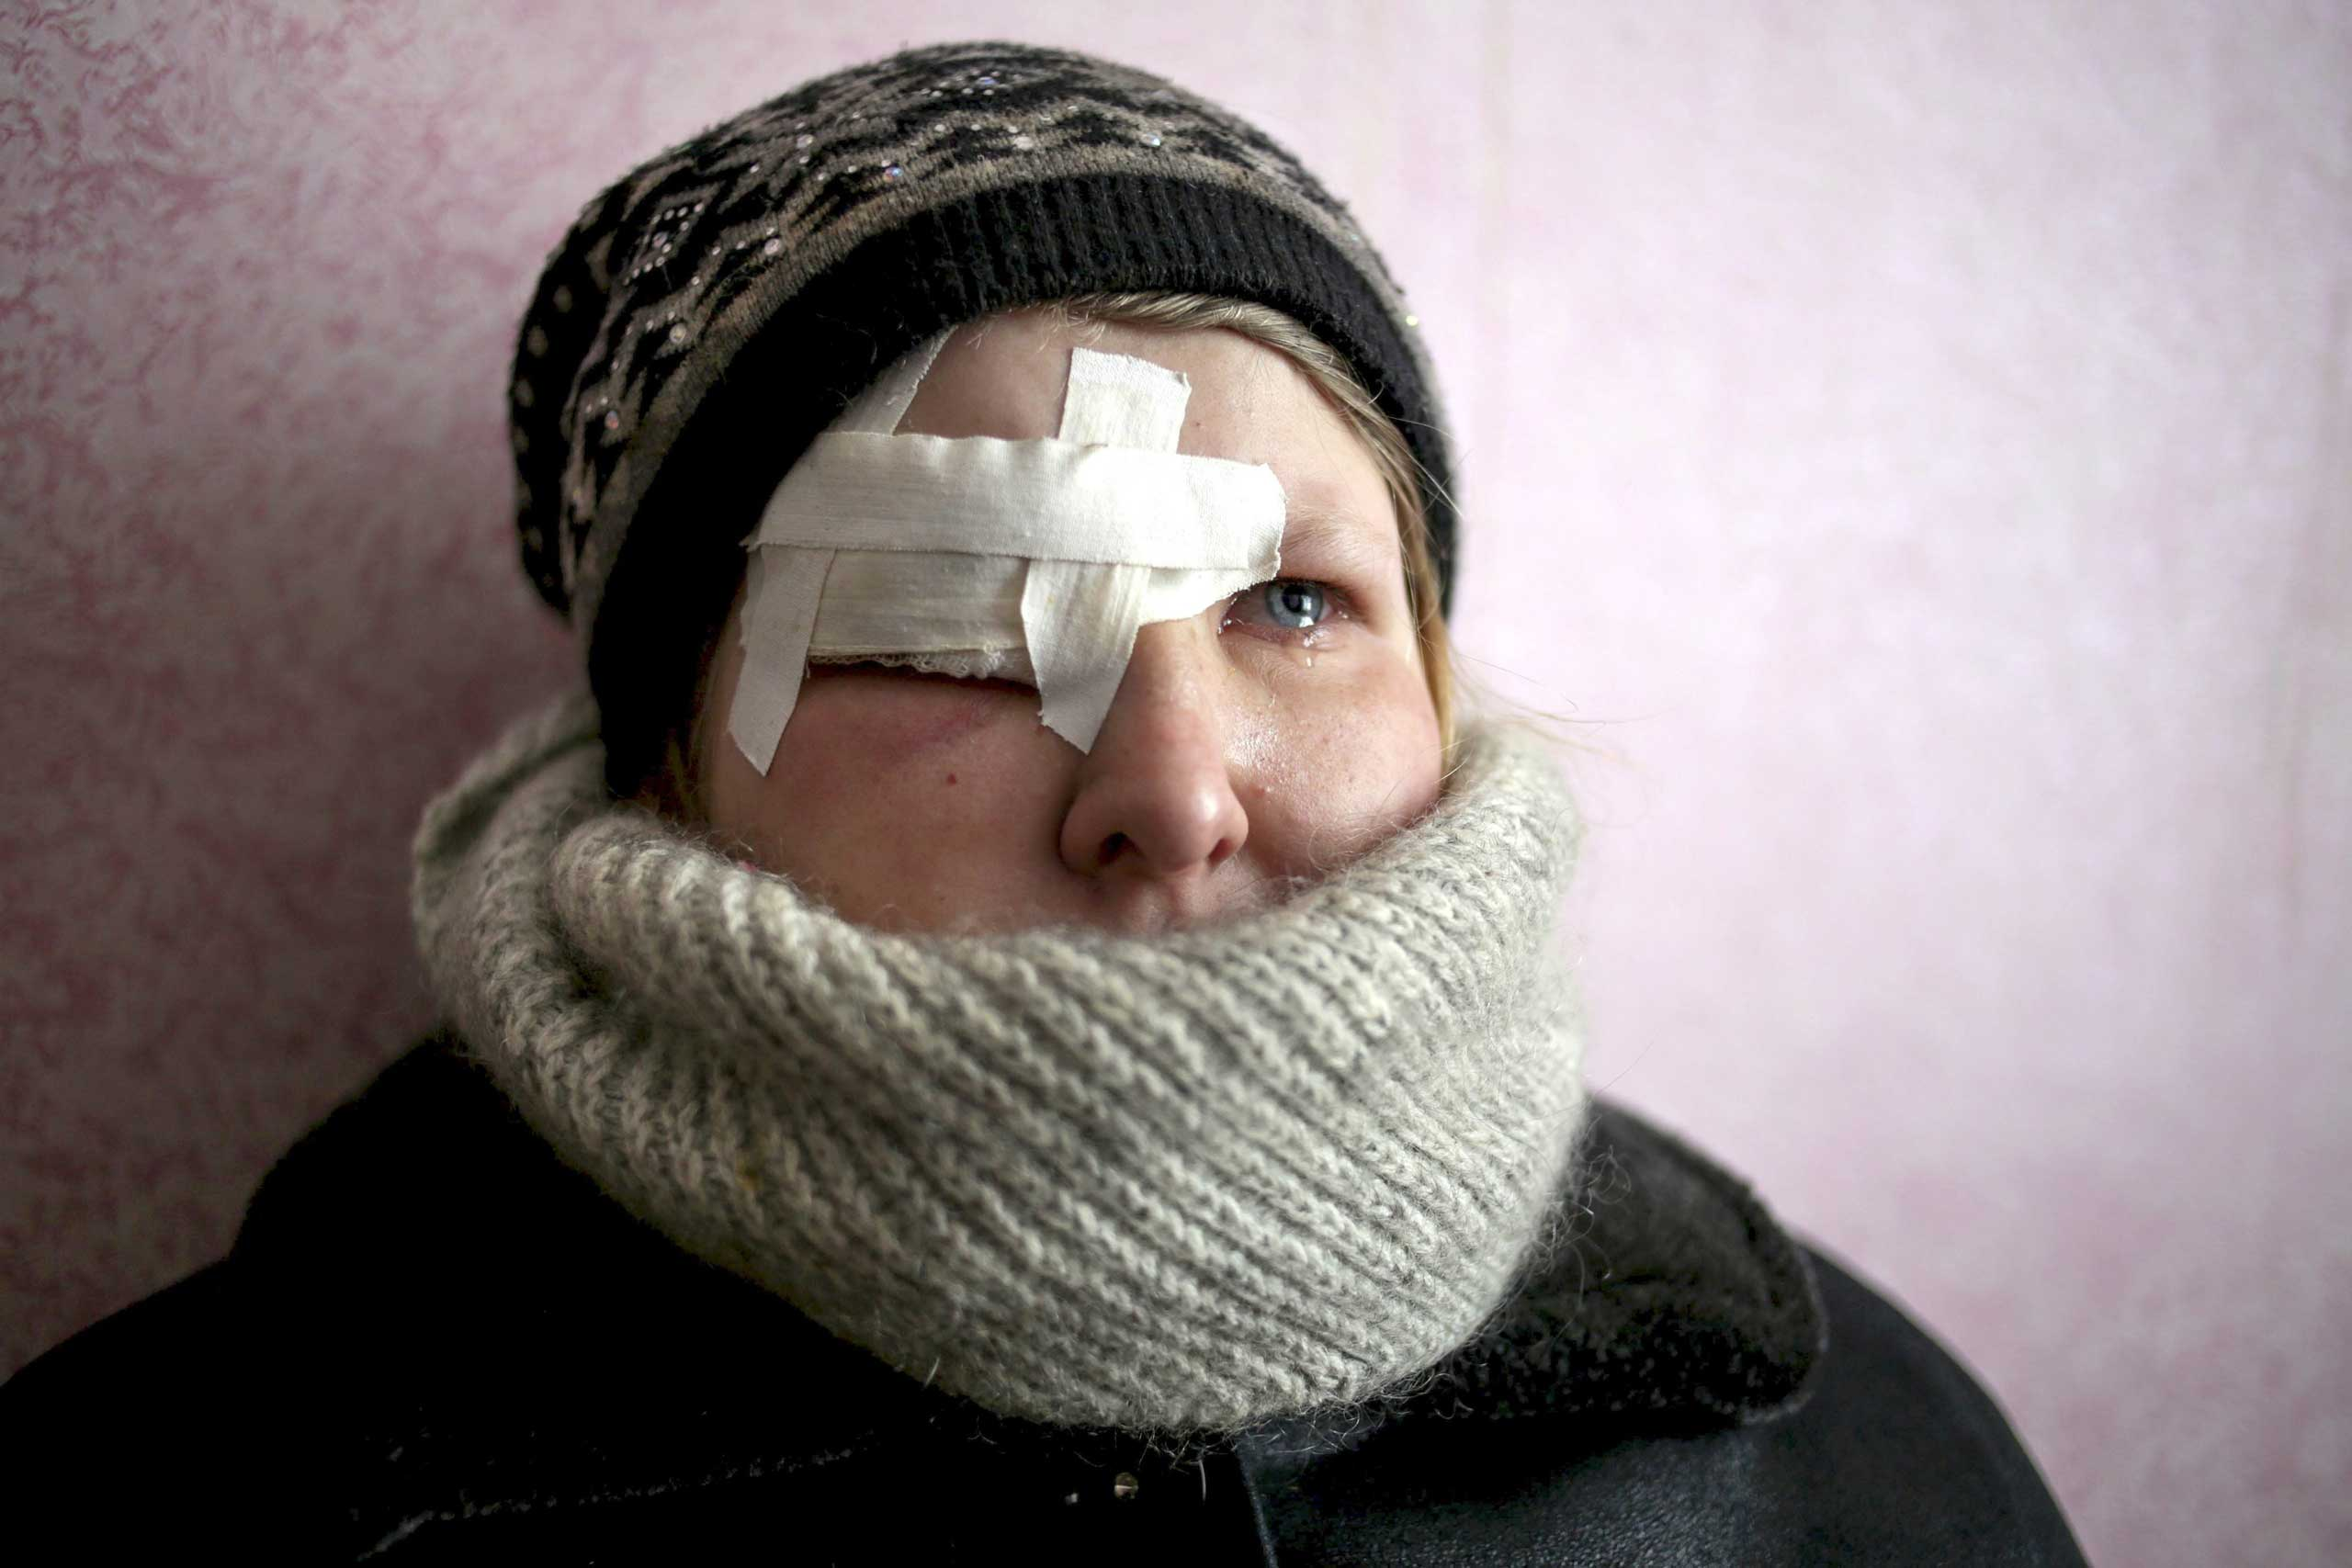 Yulia Novomlynets, 18, waits in a line to receive the humanitarian aid in the local House of Culture, which is used as a bomb shelter in Mironovka village, Feb. 17, 2015.